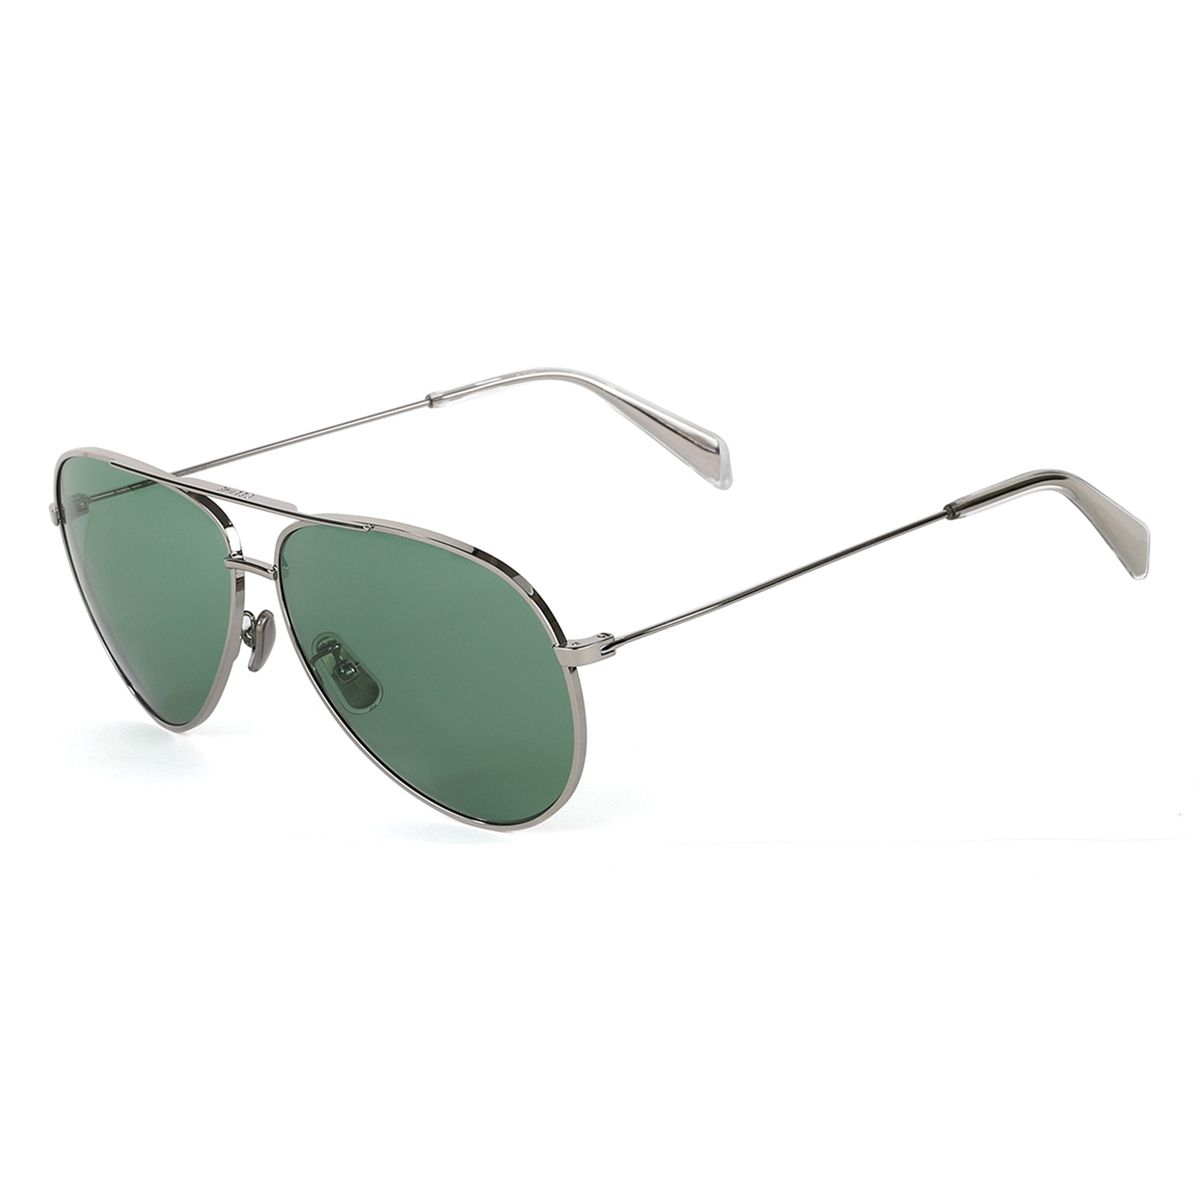 CELINE SUNGLASSES/3KITCLSMALR0 / SILVER(D.GREEN)